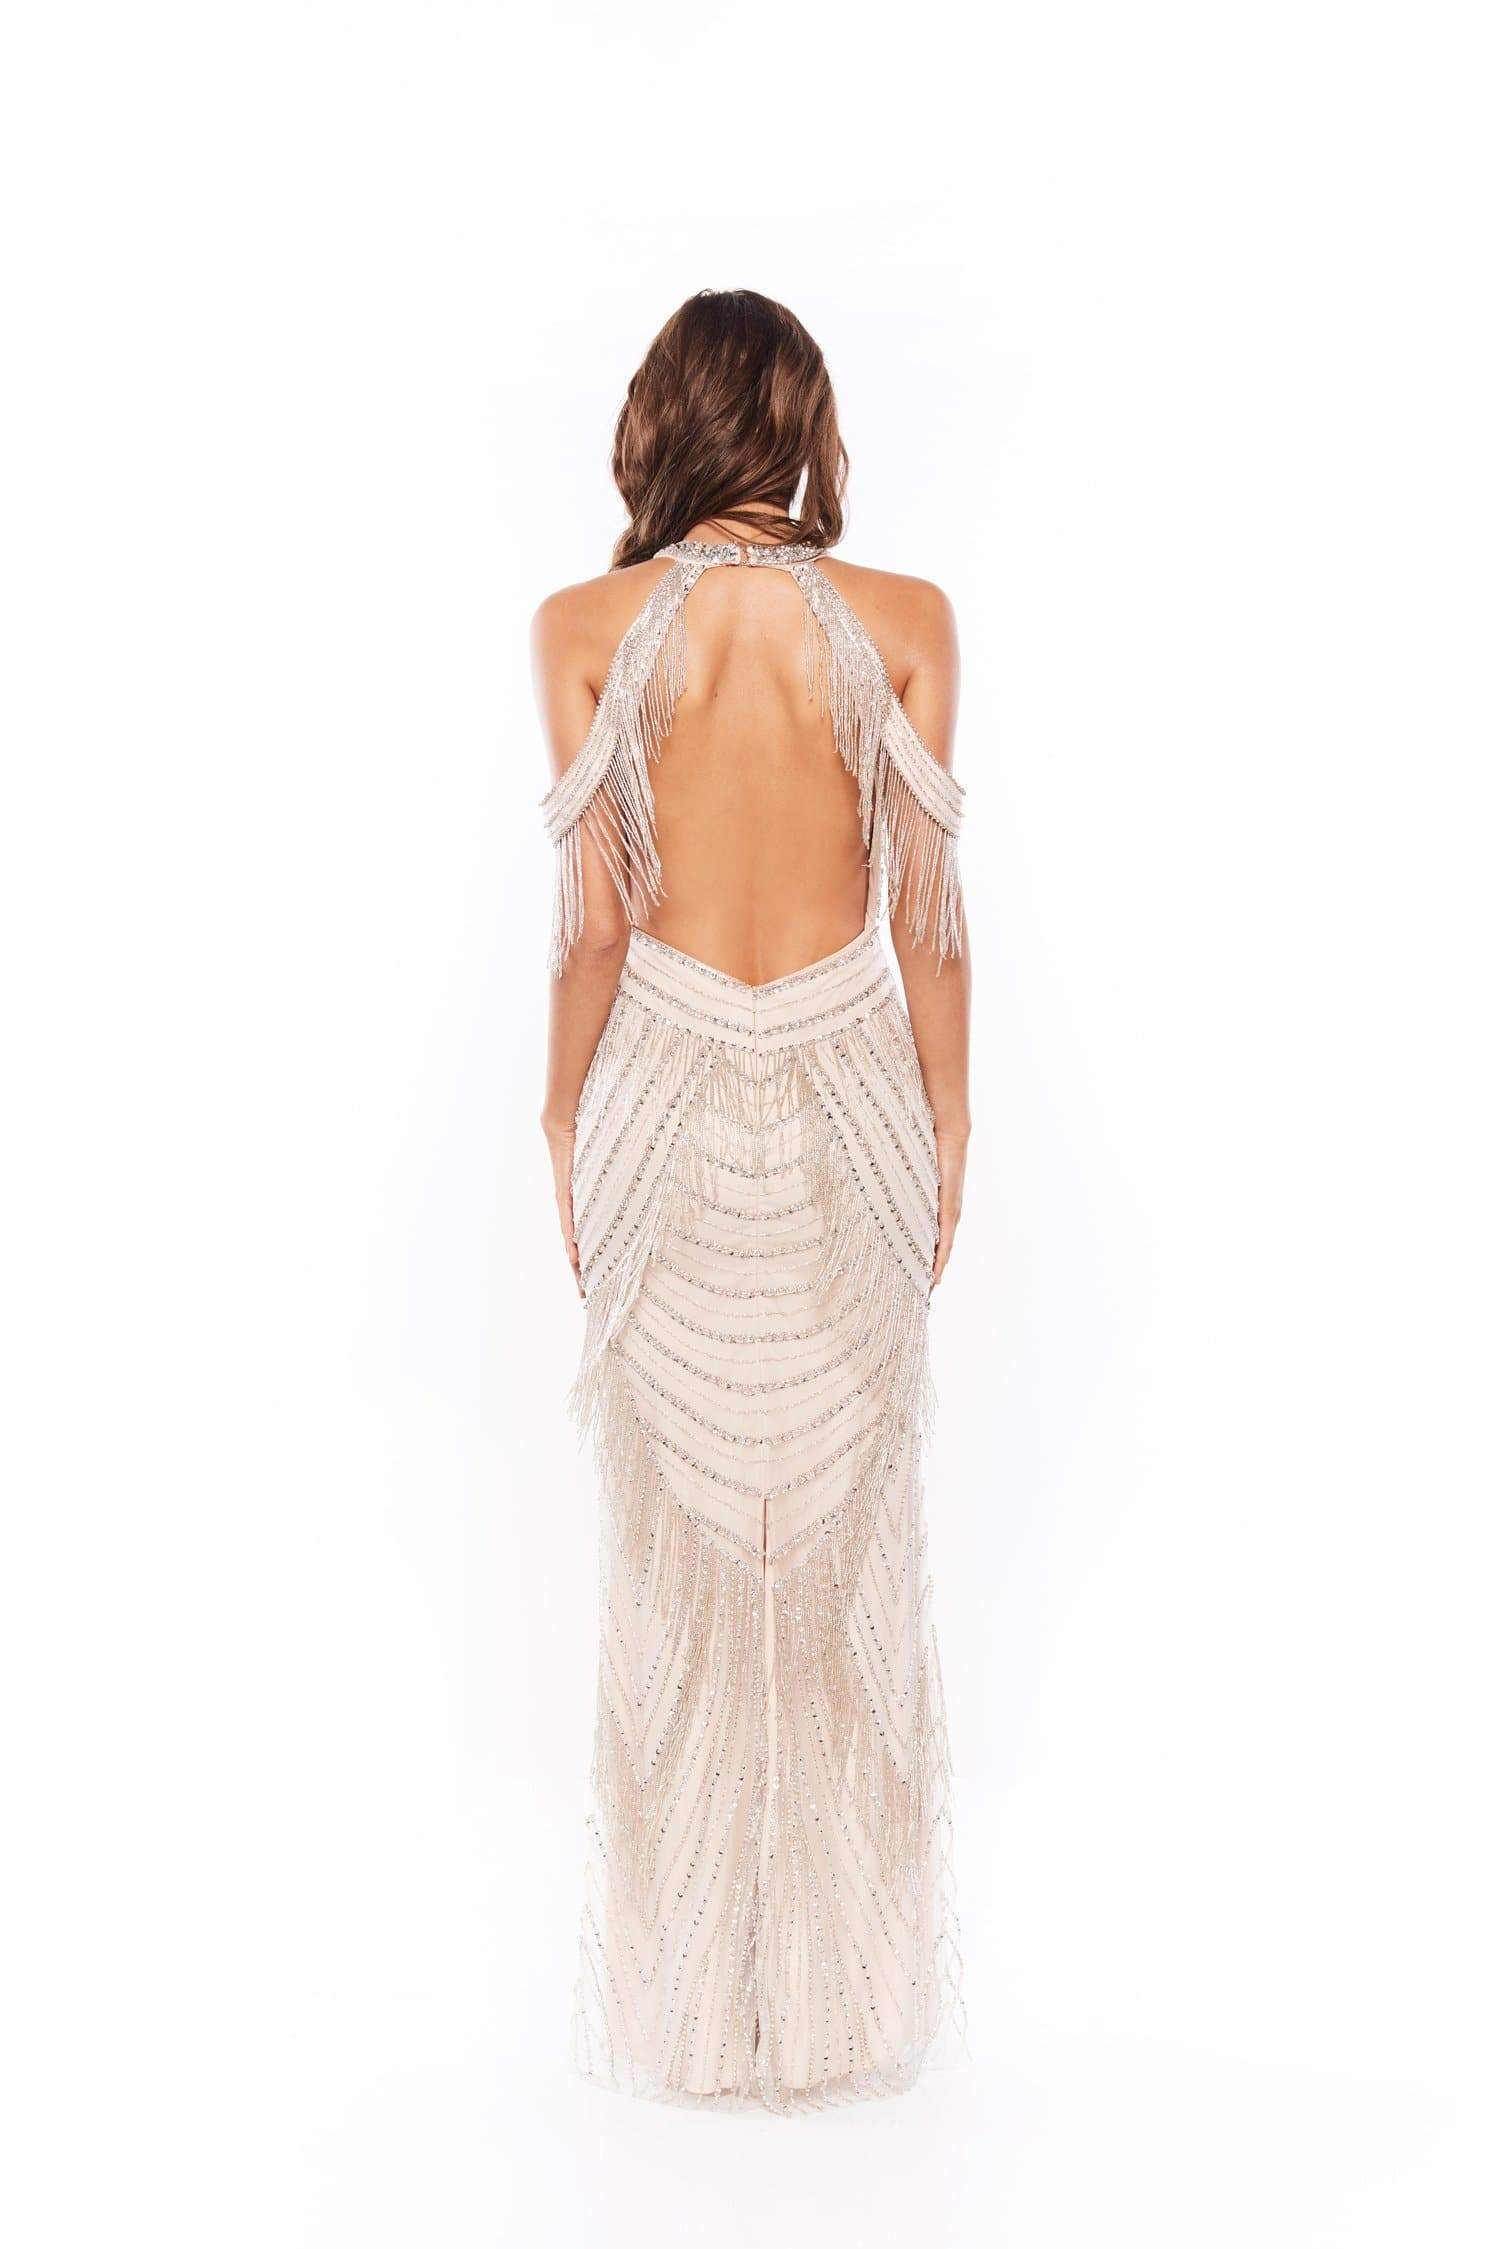 Joeliyn - Backless Beaded Gown | Off-Shoulder Straps & High Neckline